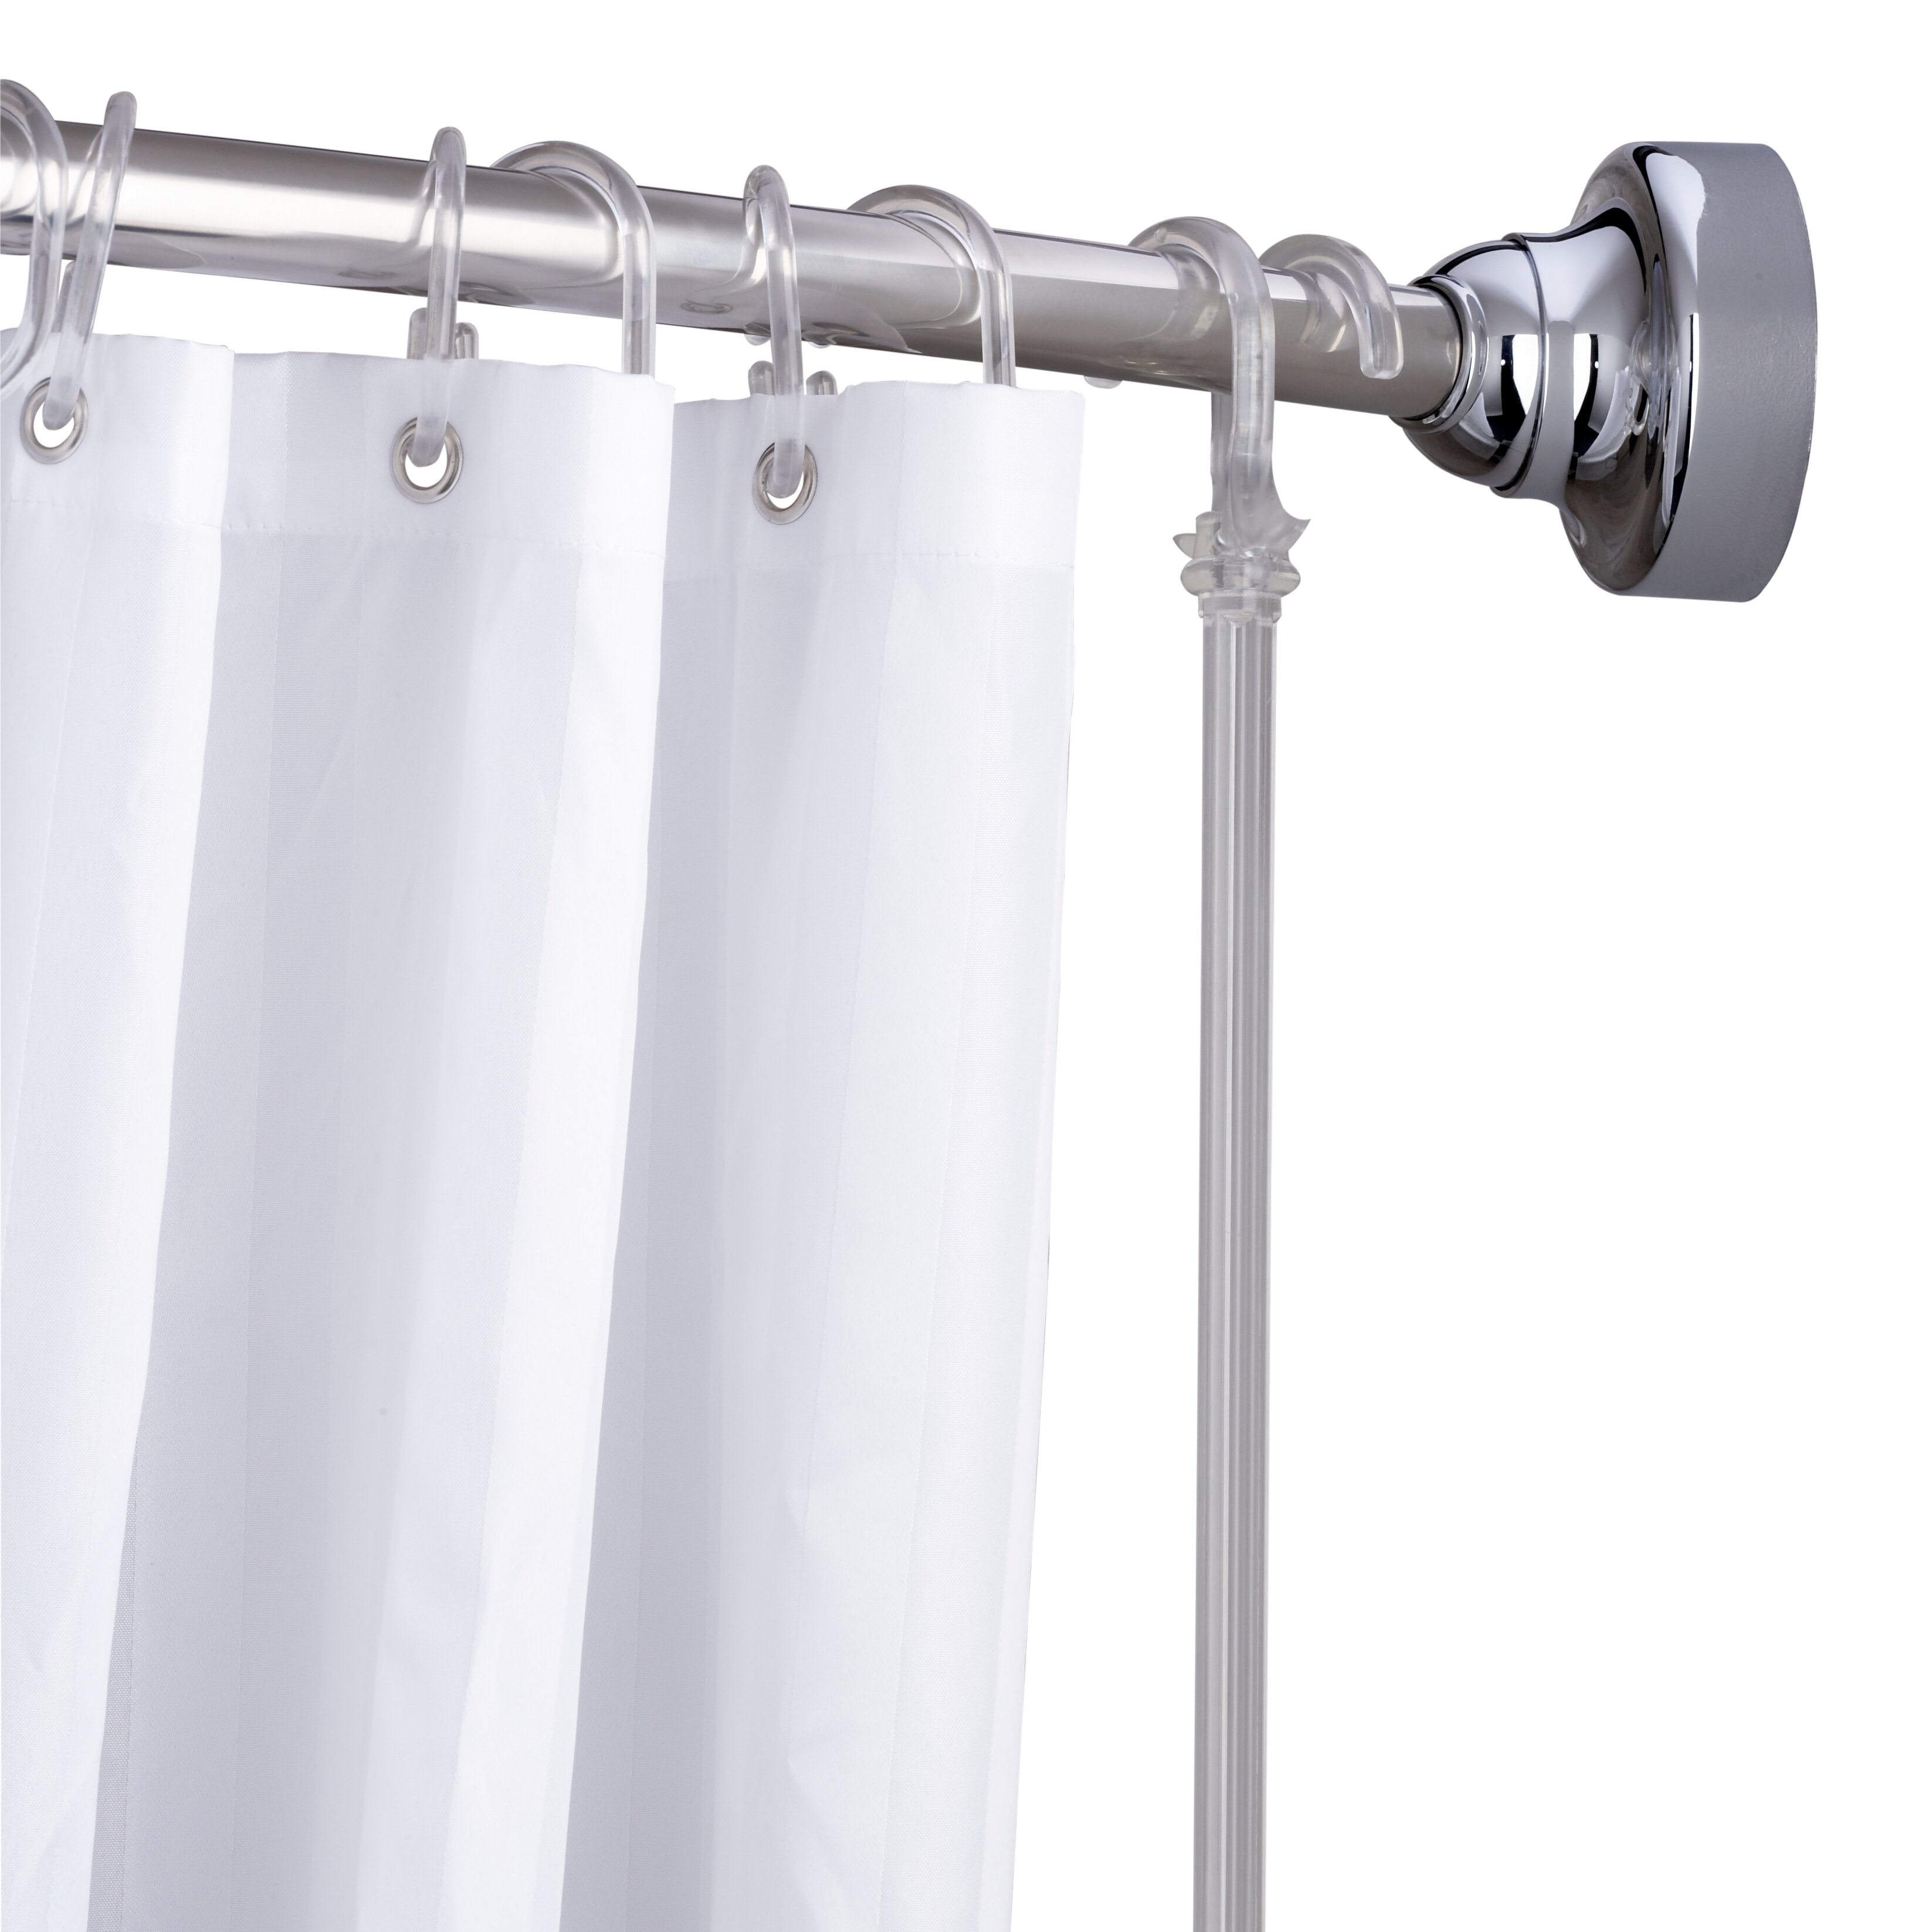 Croydex Space Saver 72 Adjustable Curved Fixed Shower Curtain Rod